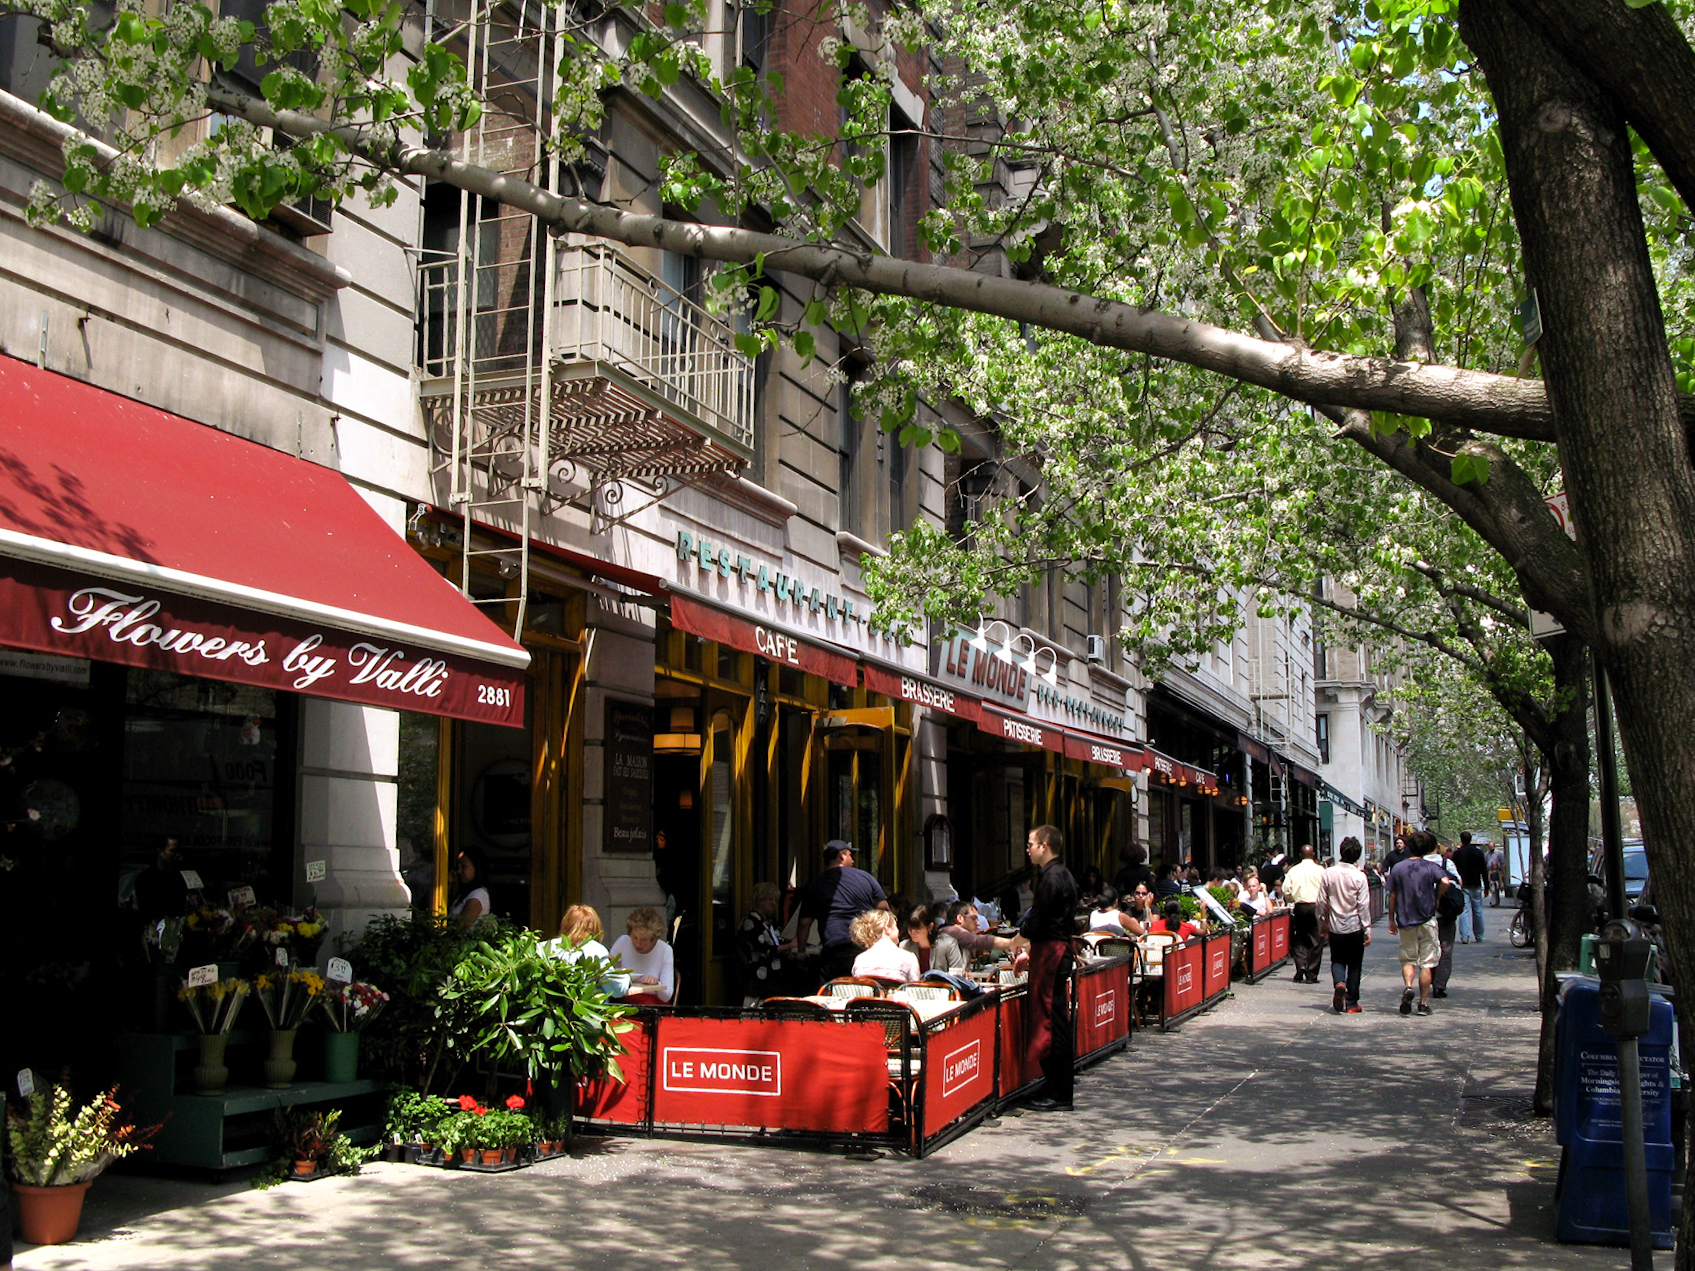 Spring Restaurant Upper West Side